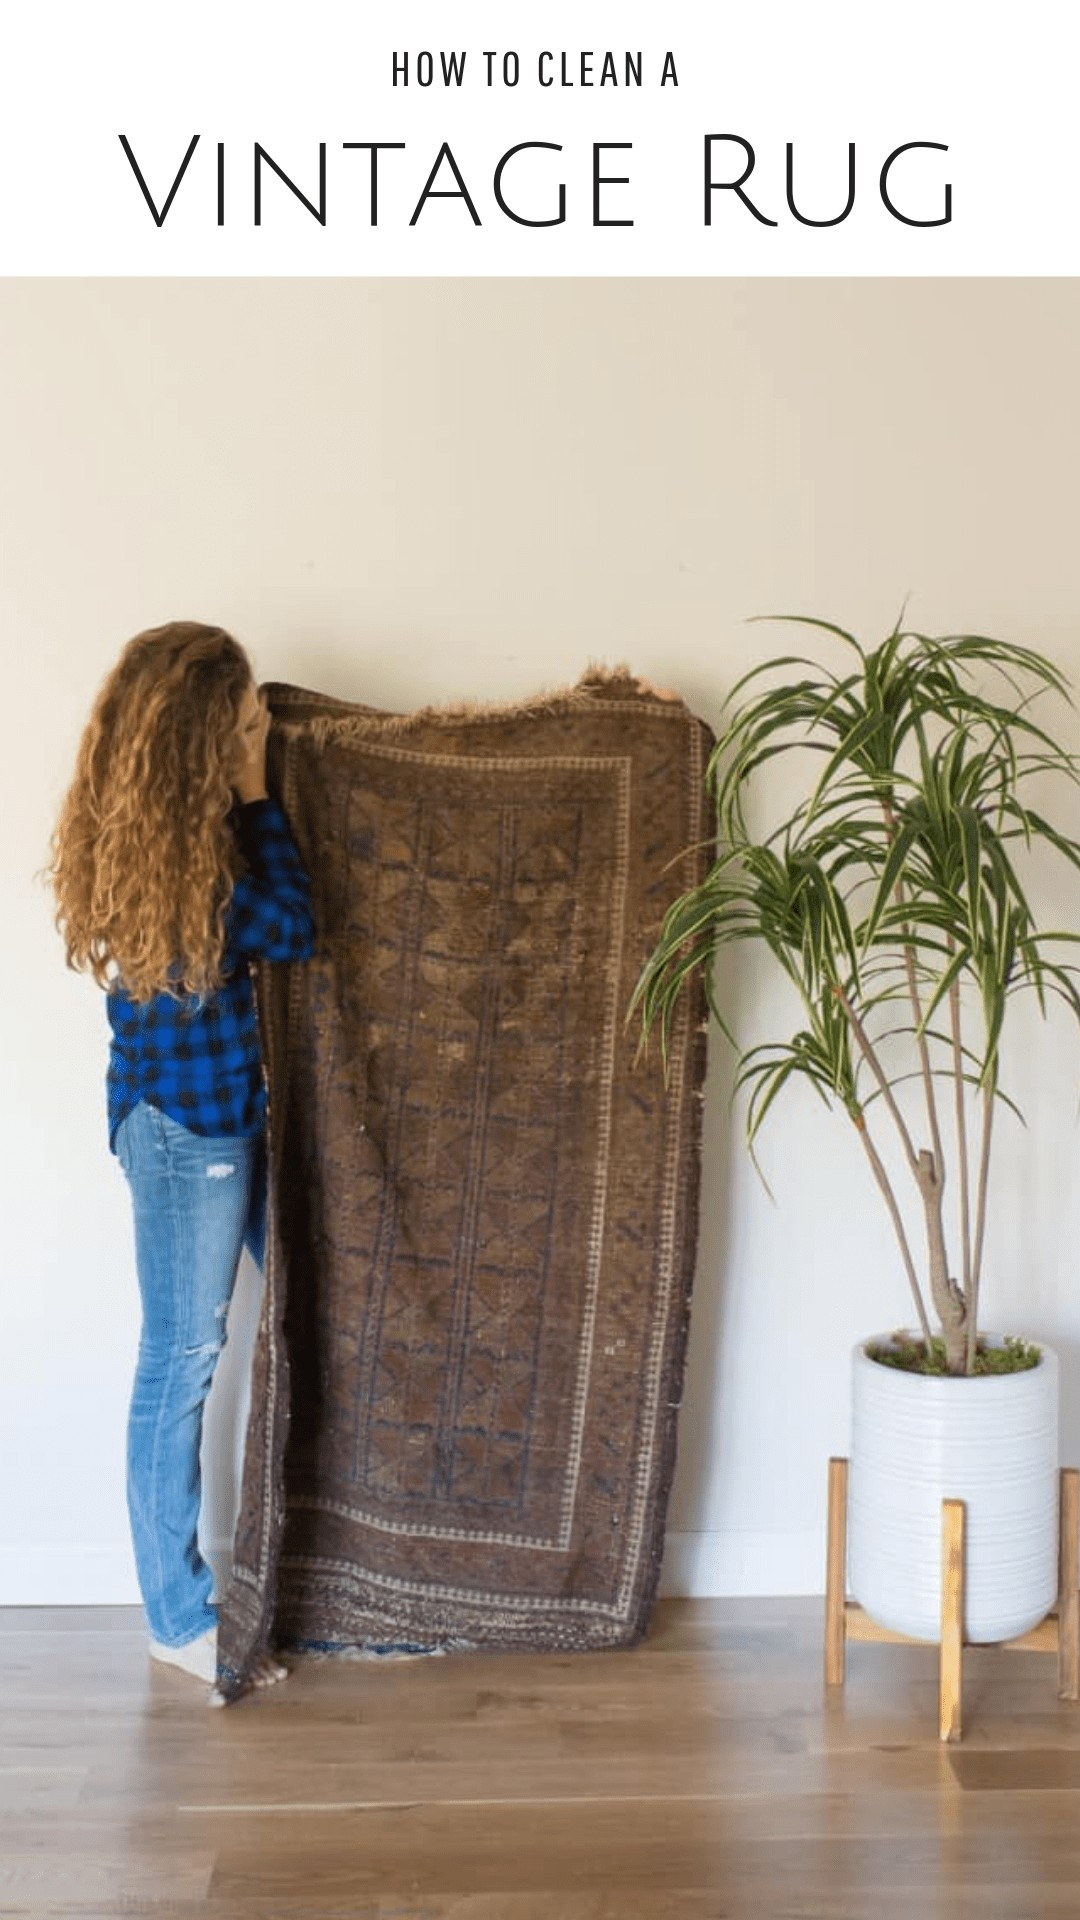 Rug cleaning at home